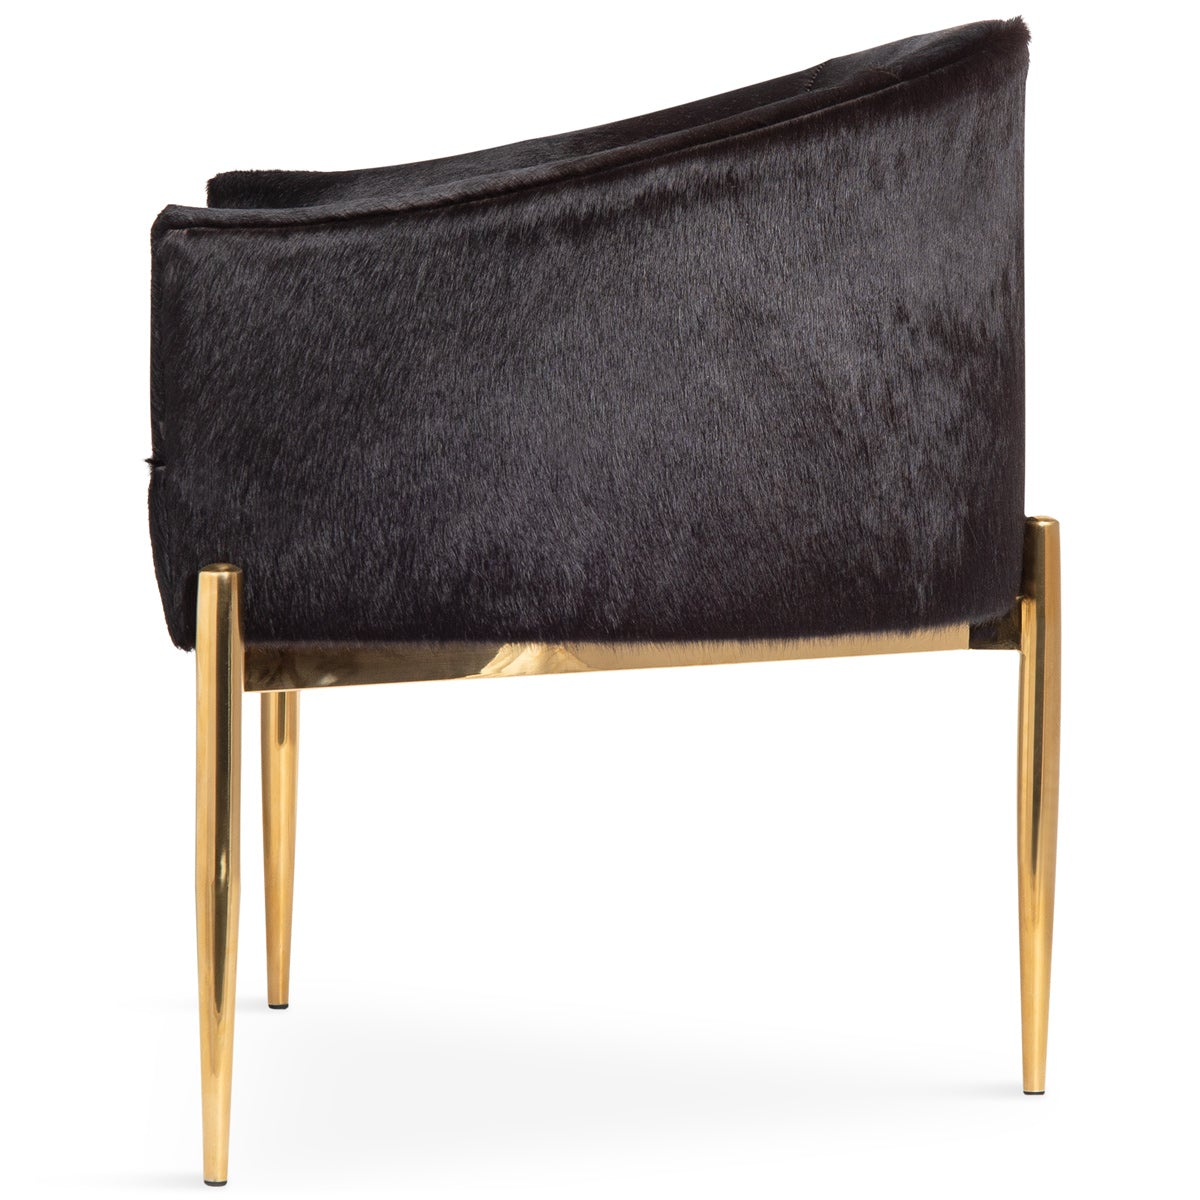 Art Deco Dining Chair in Black Cowhide